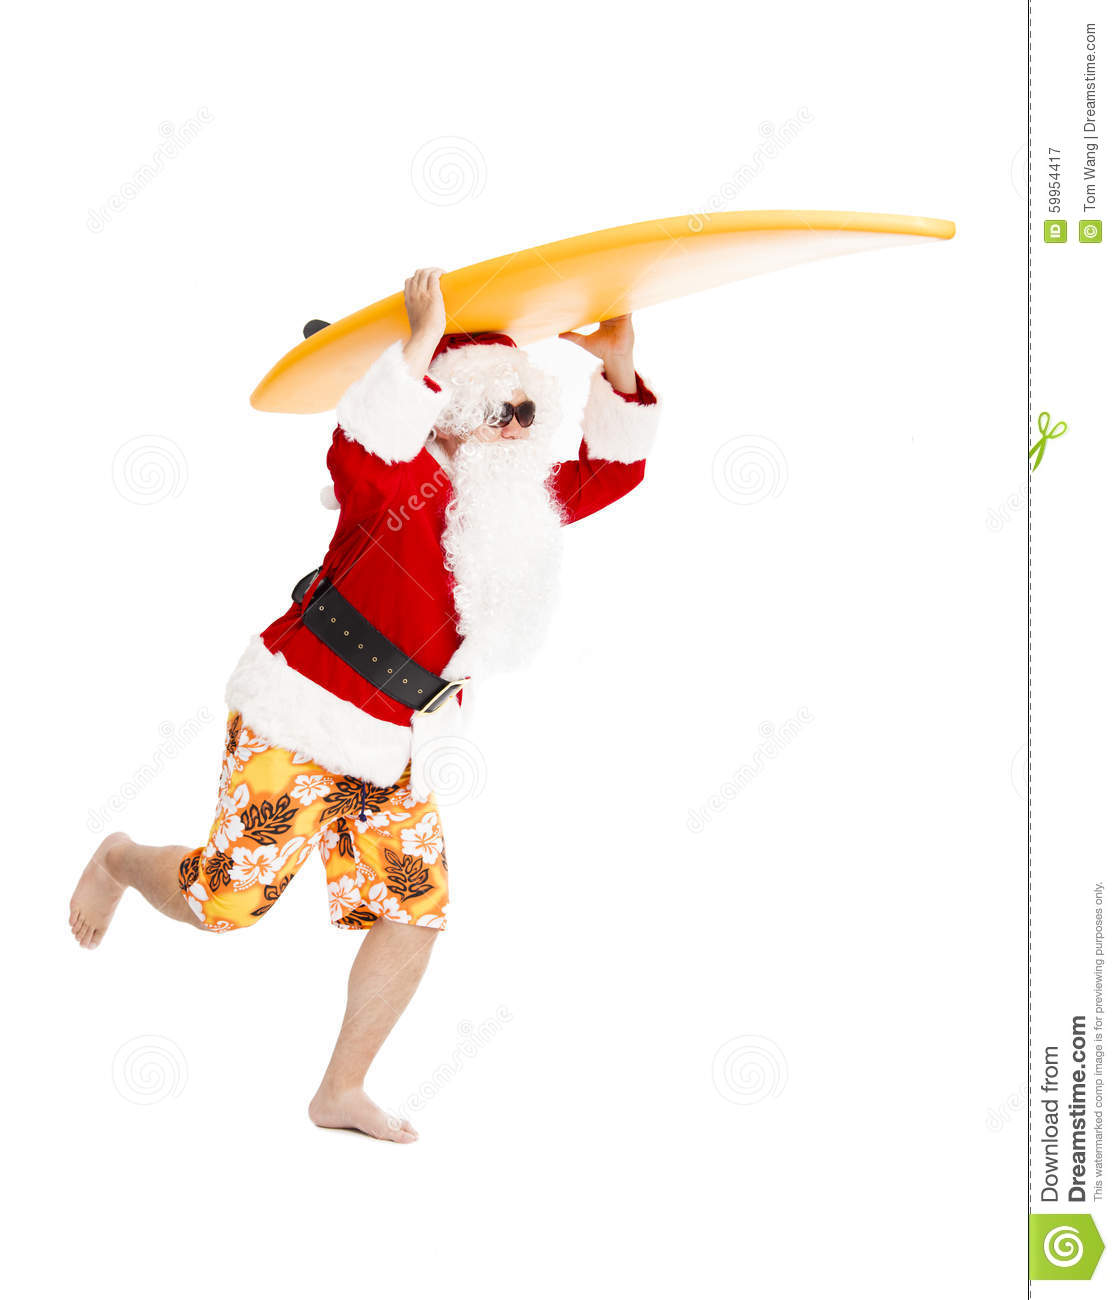 Santa Claus running with surf board